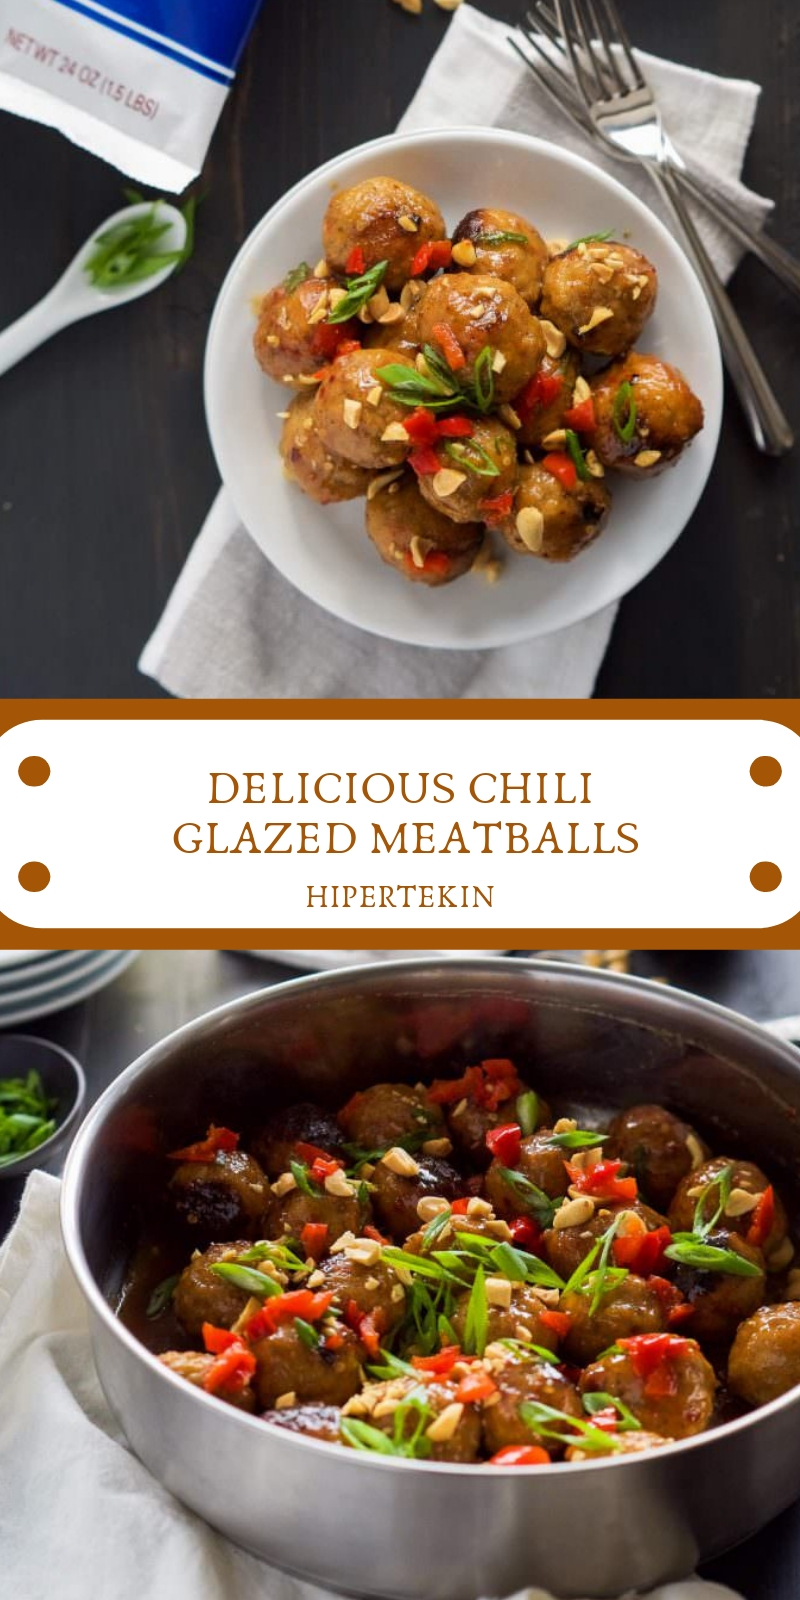 DELICIOUS CHILI GLAZED MEATBALLS